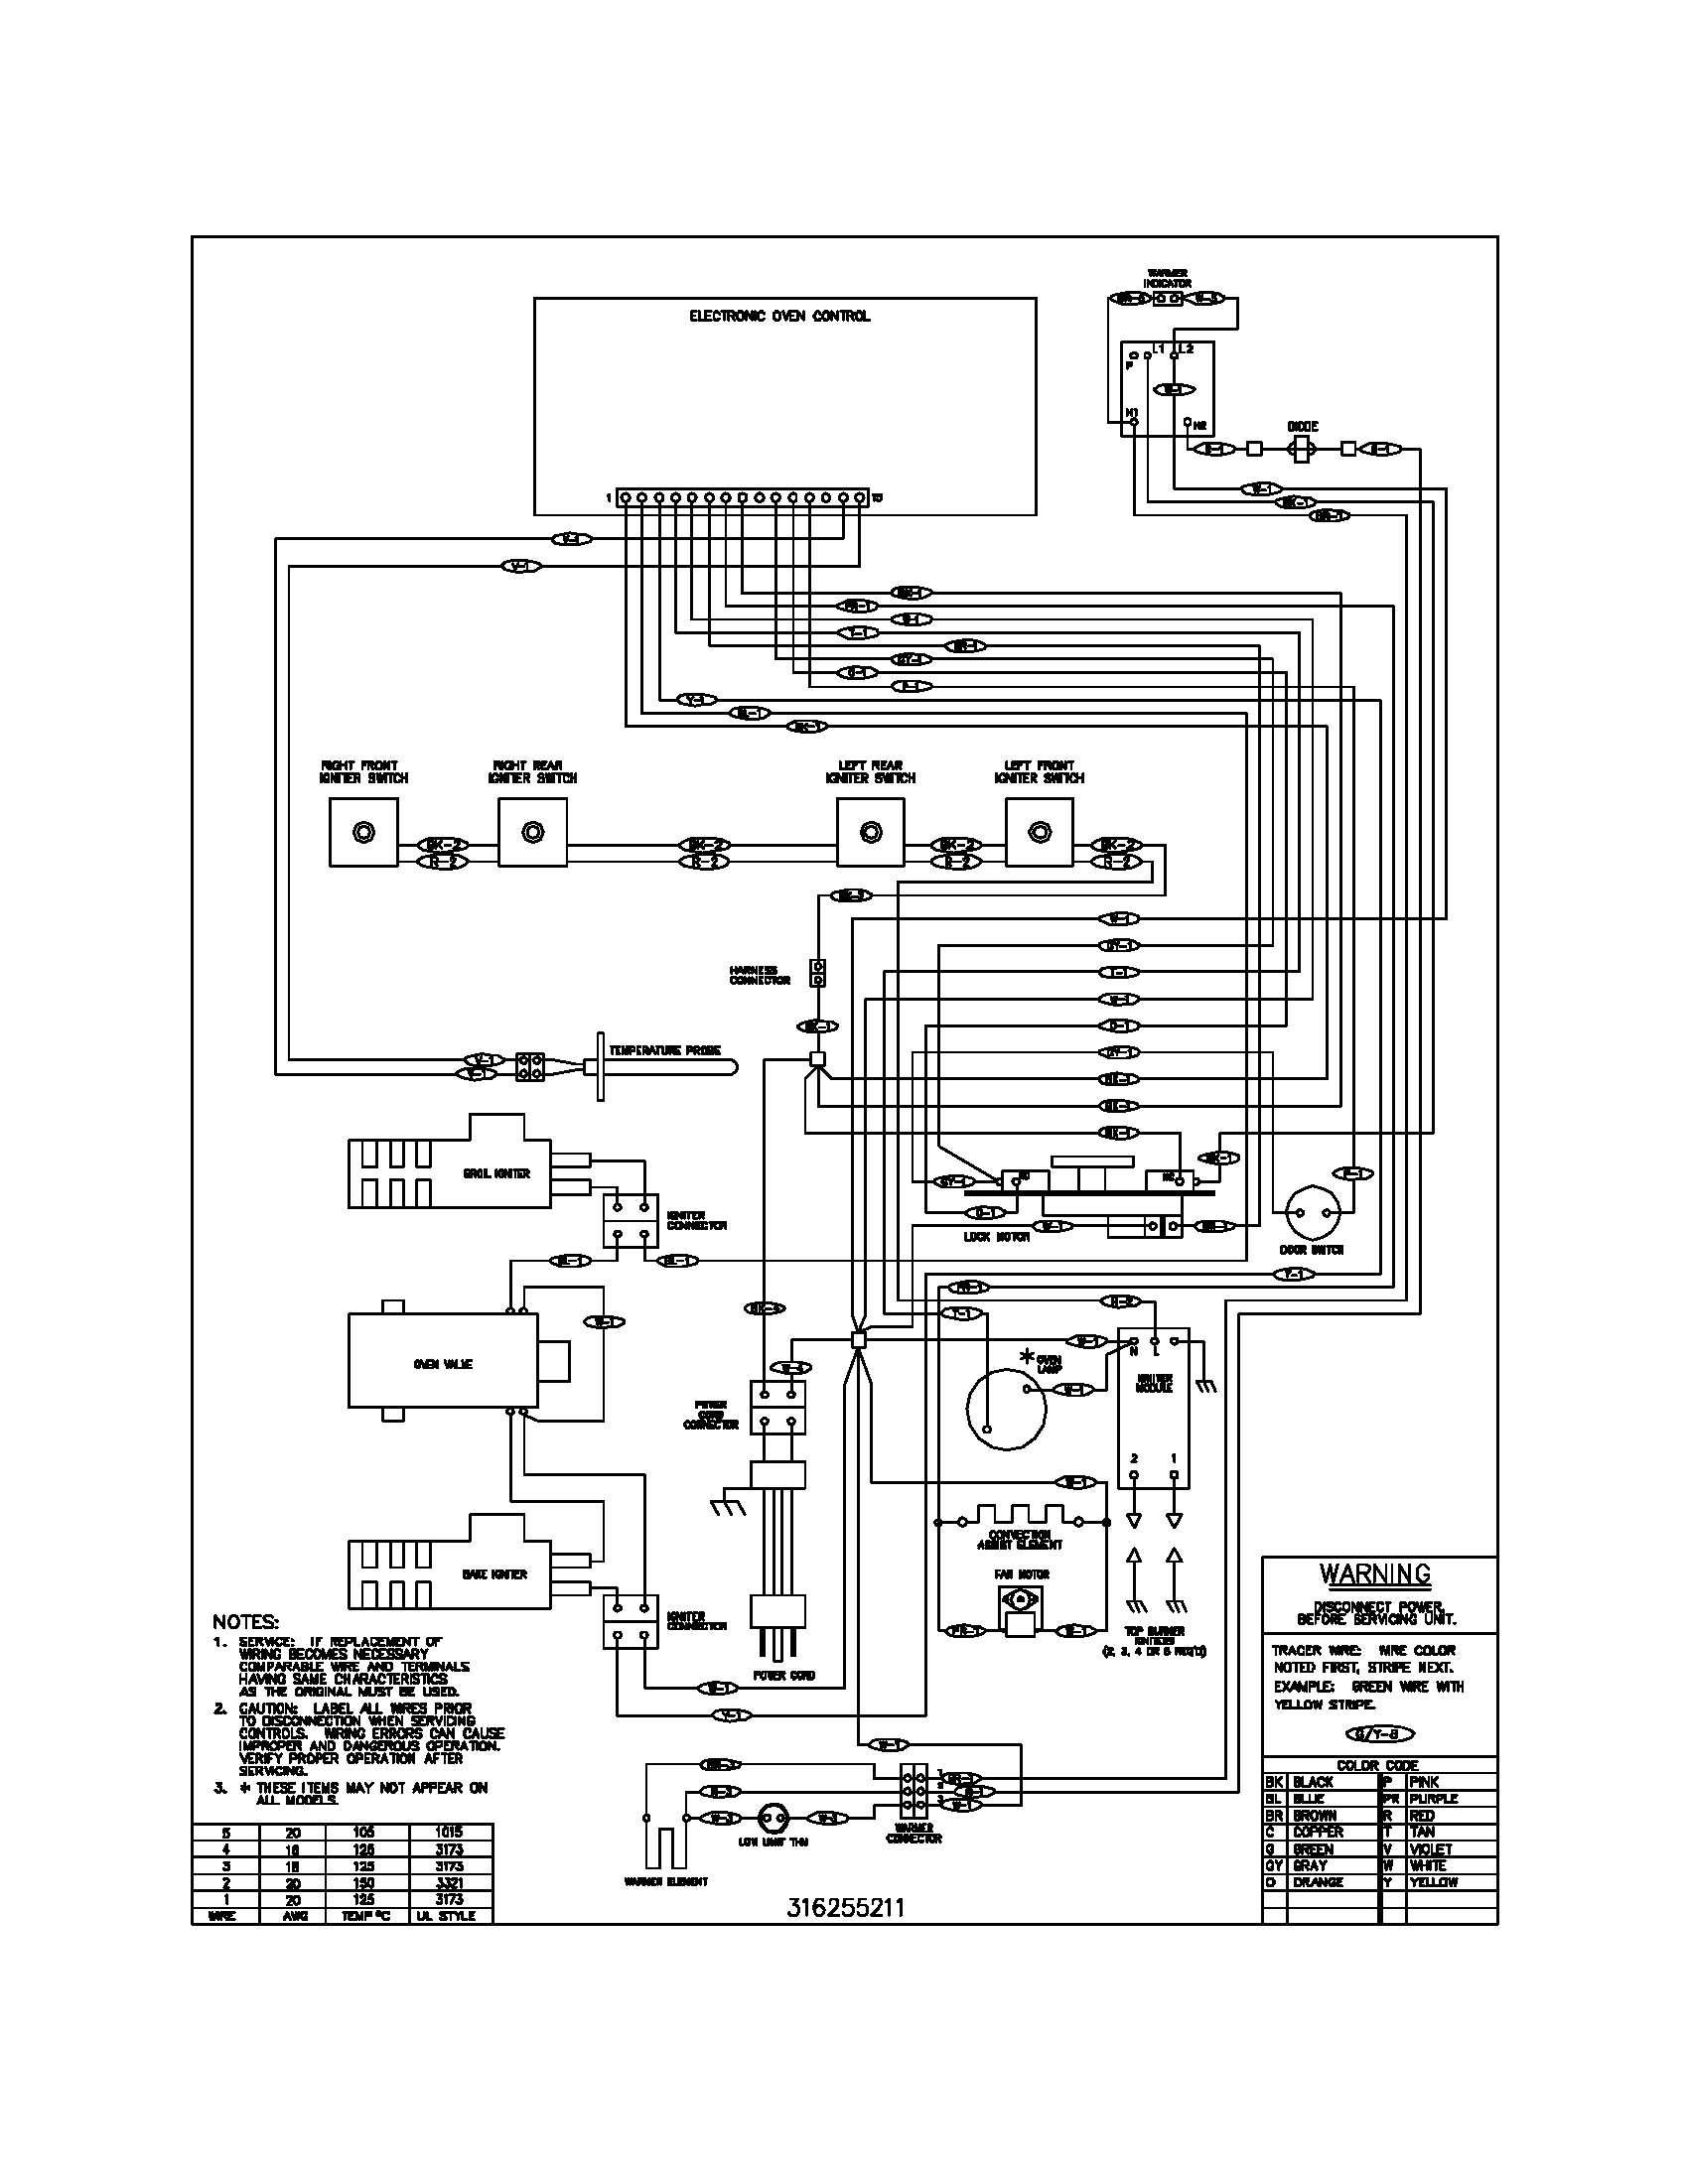 hight resolution of cold room control panel wiring diagram ge refrigerator wiring diagram awesome awesome freezer defrost timer